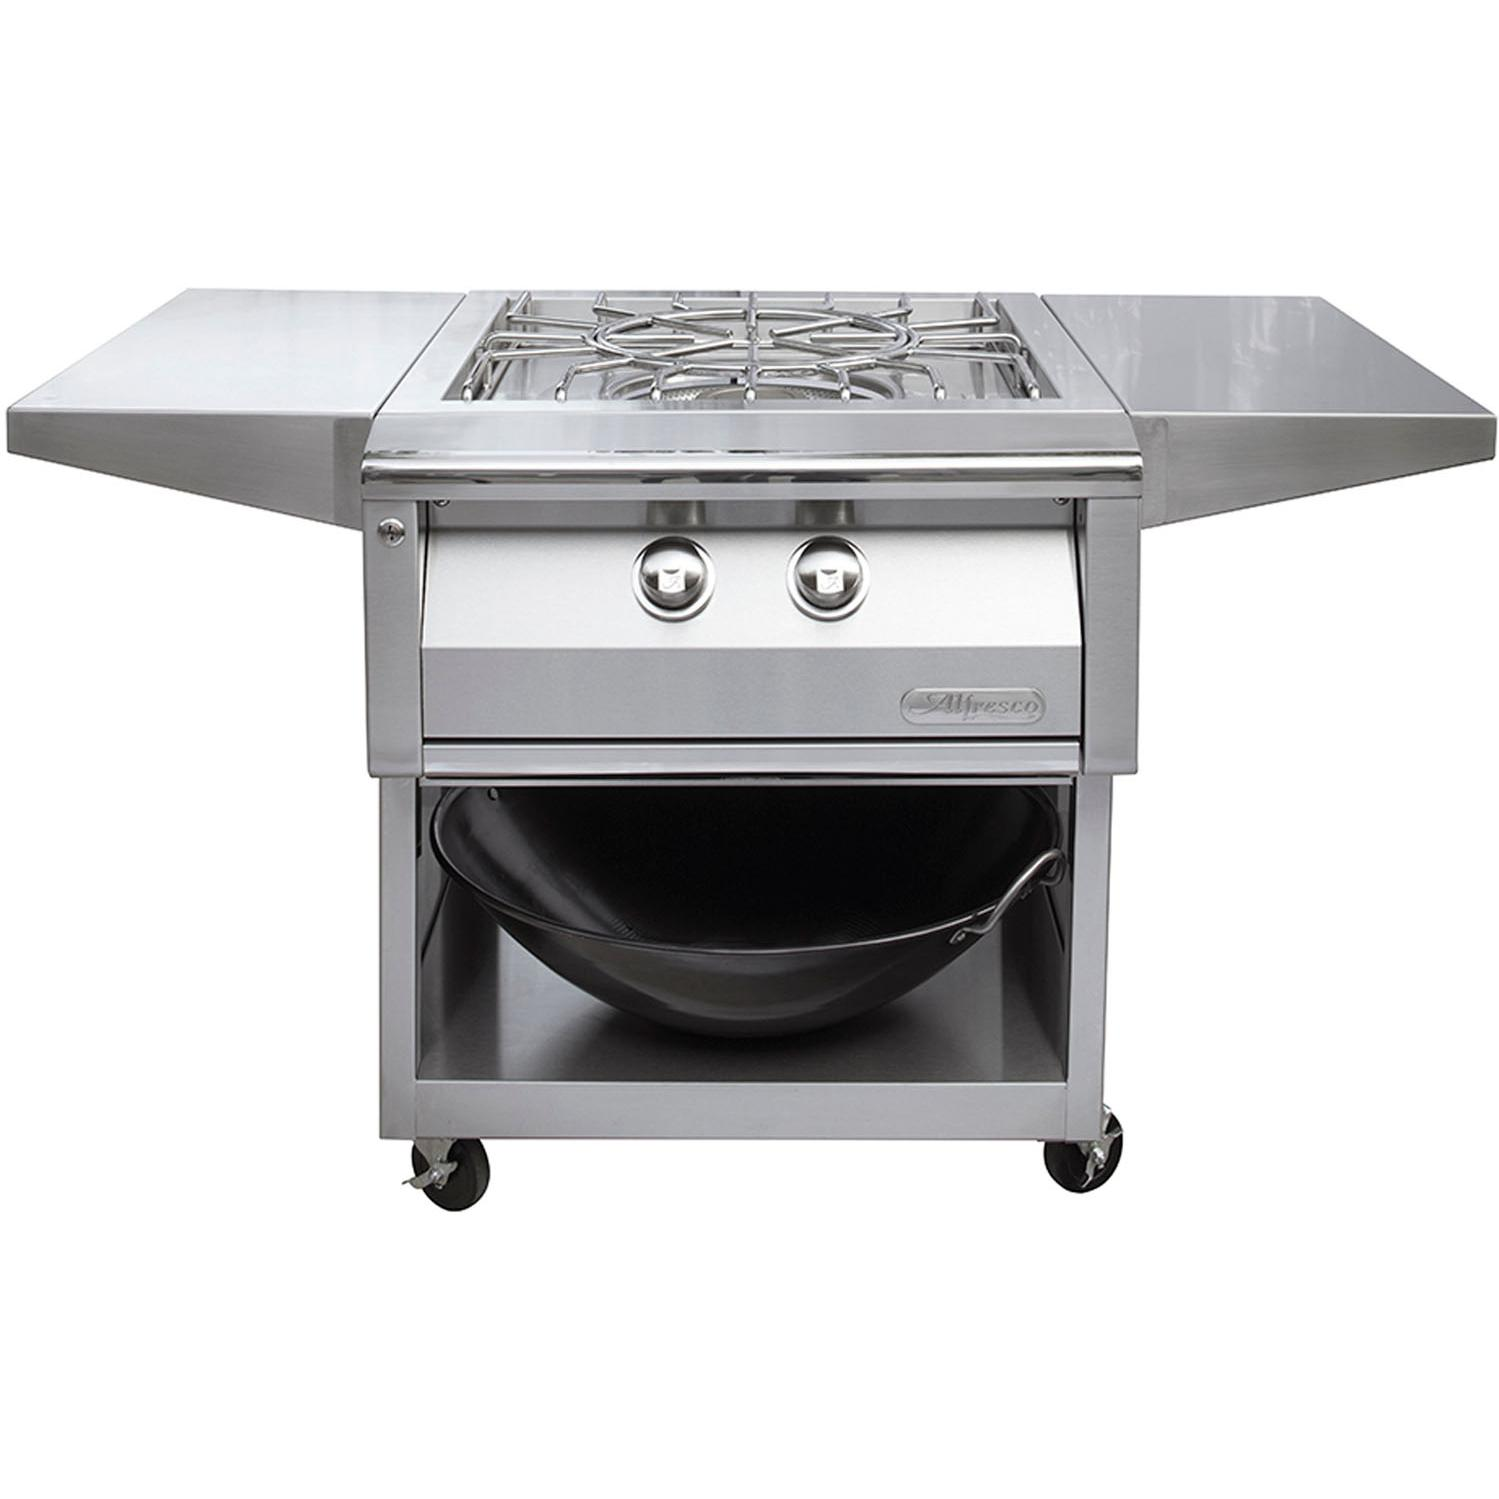 Picture of Alfresco 24-Inch Cart For Versa Power Cooker - AXEVP-C